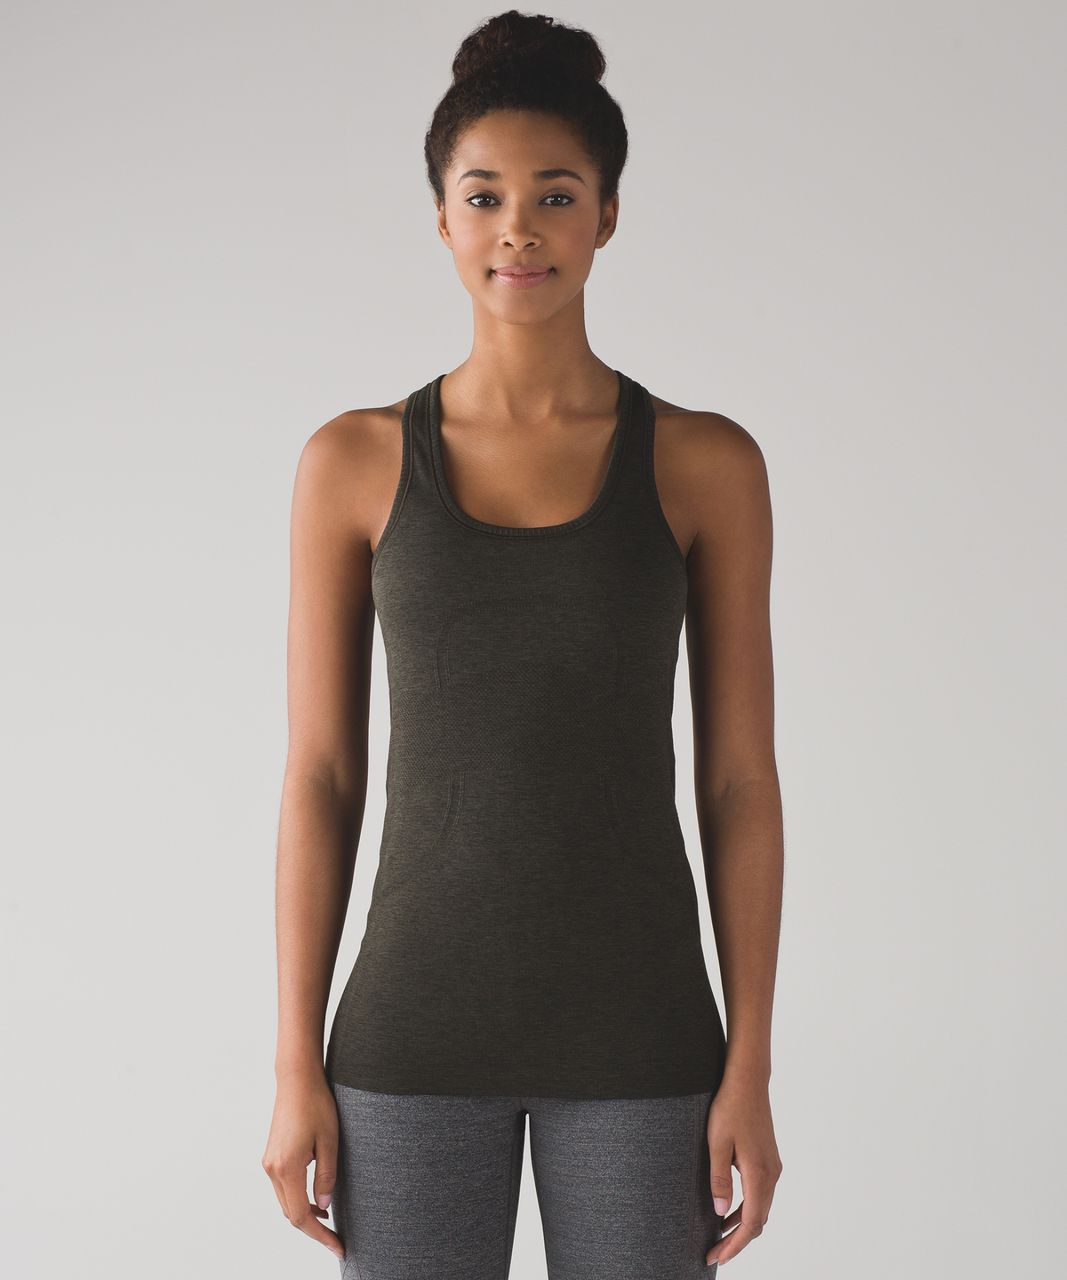 e7e07ce28dbb3 Lululemon Swiftly Tech Racerback - Dark Olive   Black - lulu fanatics